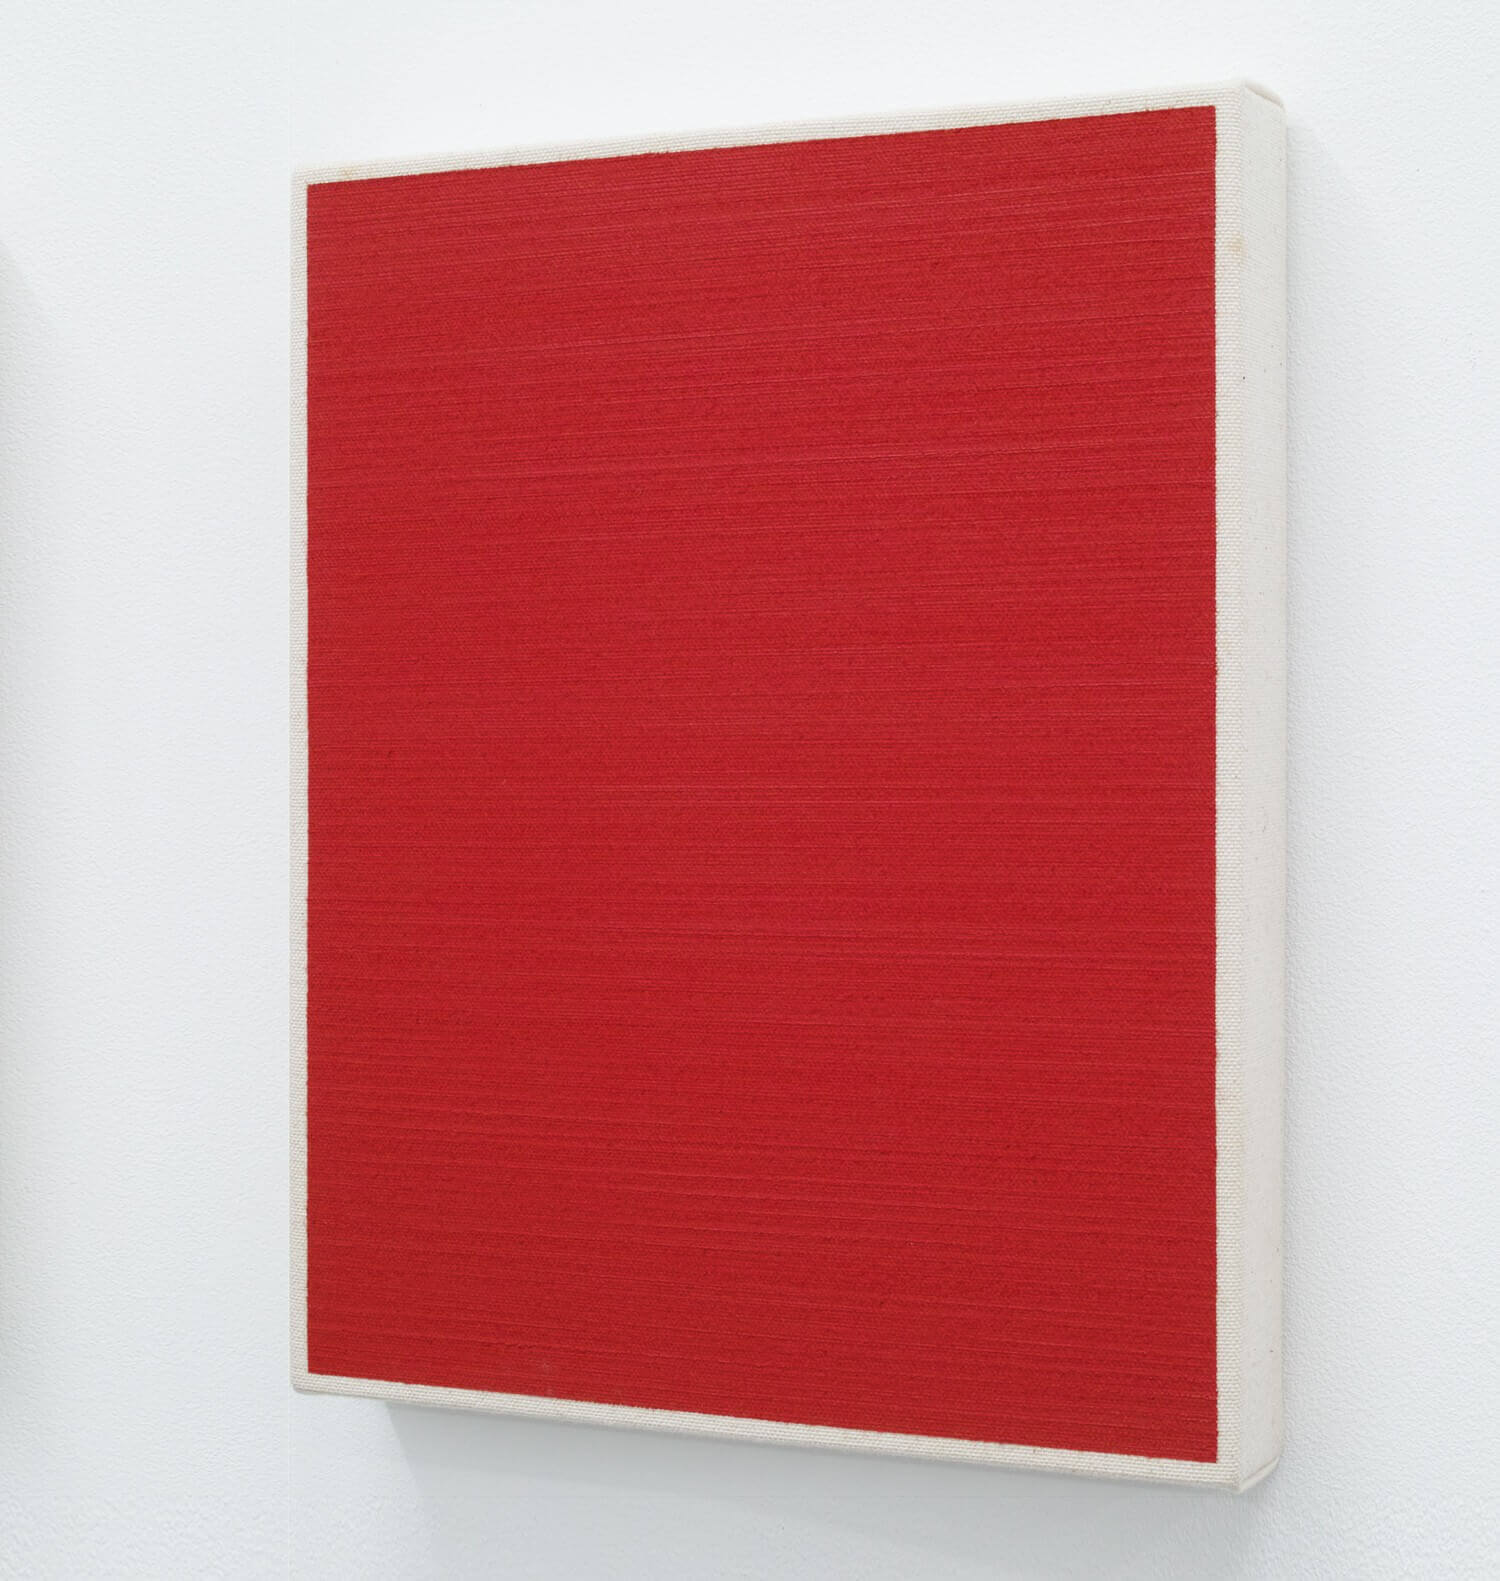 Text No.479 / oil, pigment on cotton, 278 x 220 x 33 mm, 2004